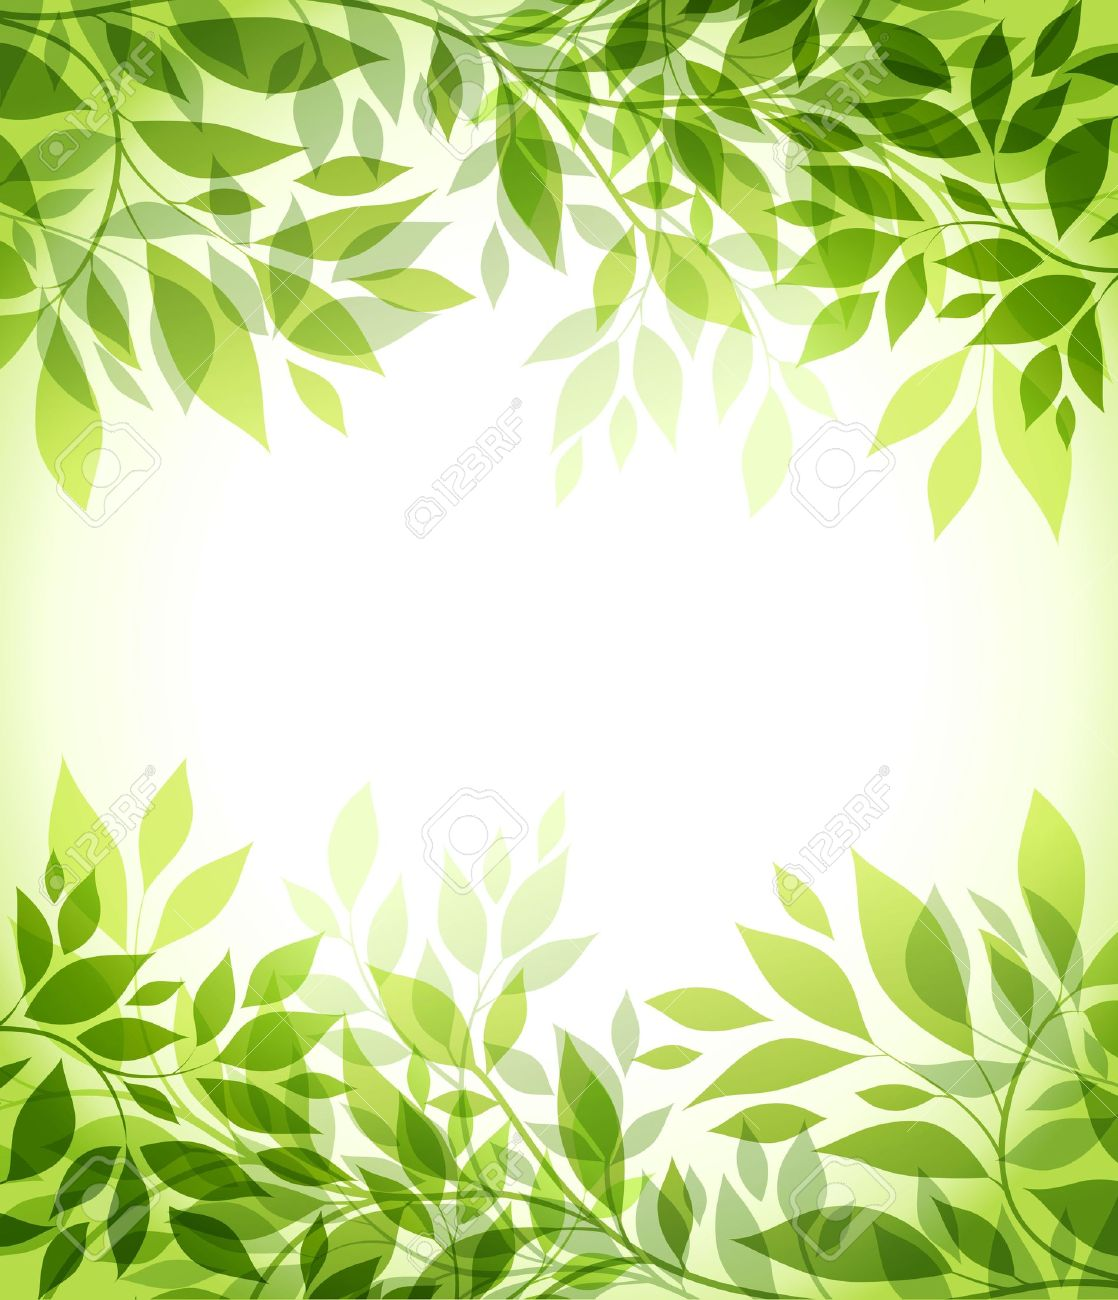 abstract background with green sheet - 13233355